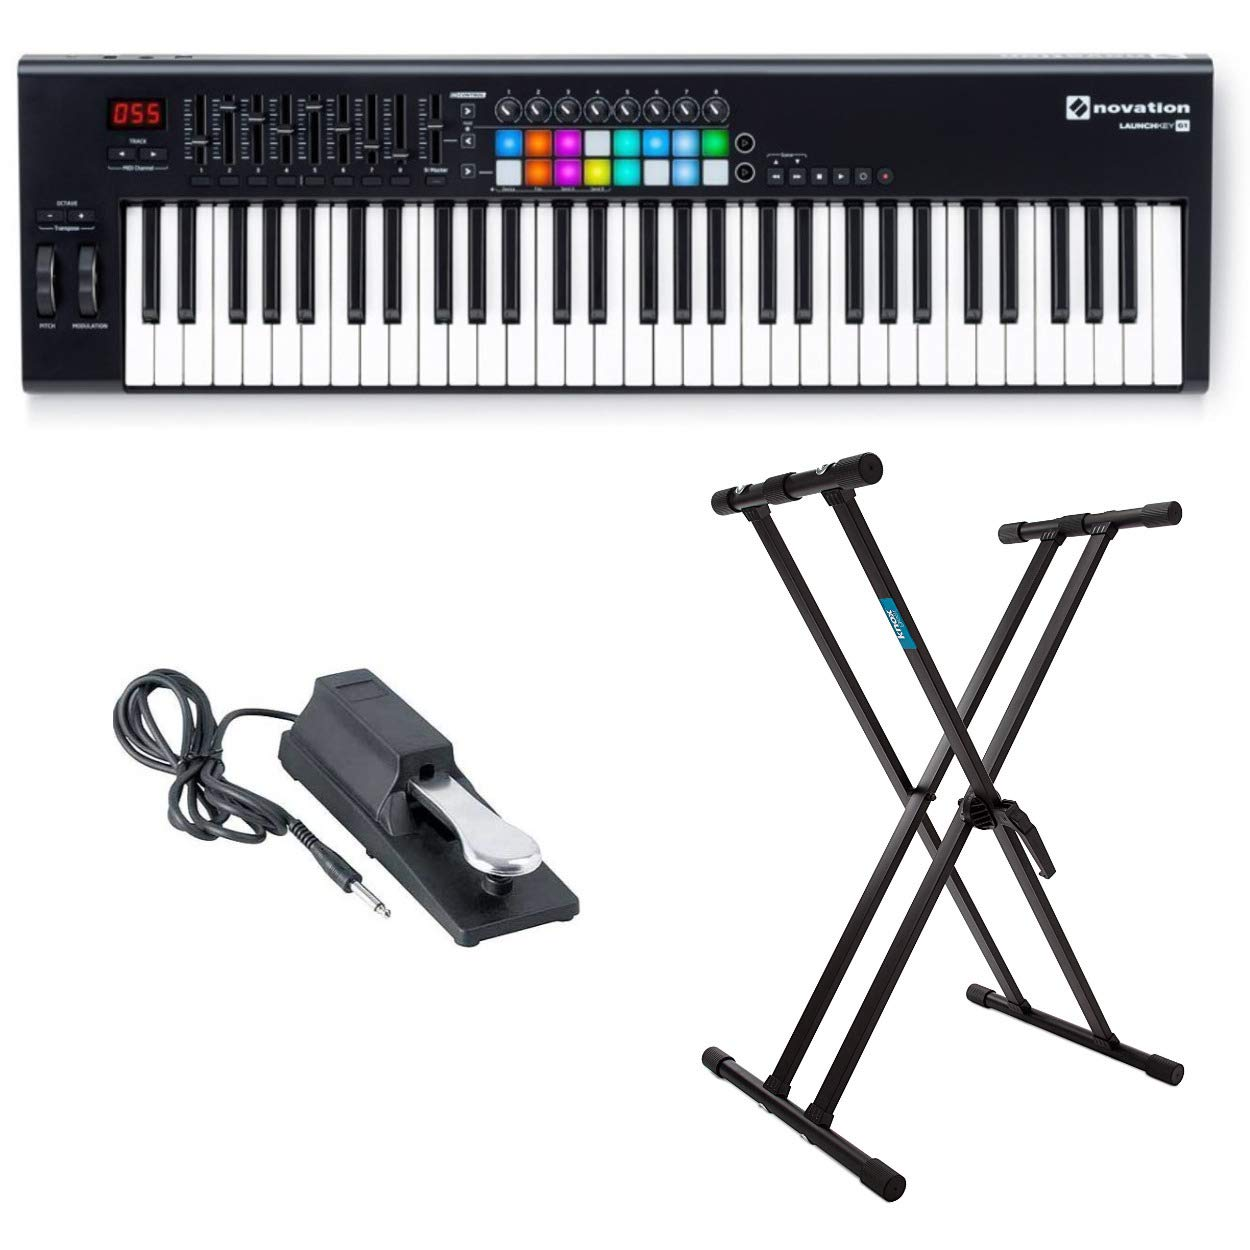 Novation Launchkey 61 MK2 Keyboard Controller with Knox Keyboard Stand and Sustain Pedal by Novation